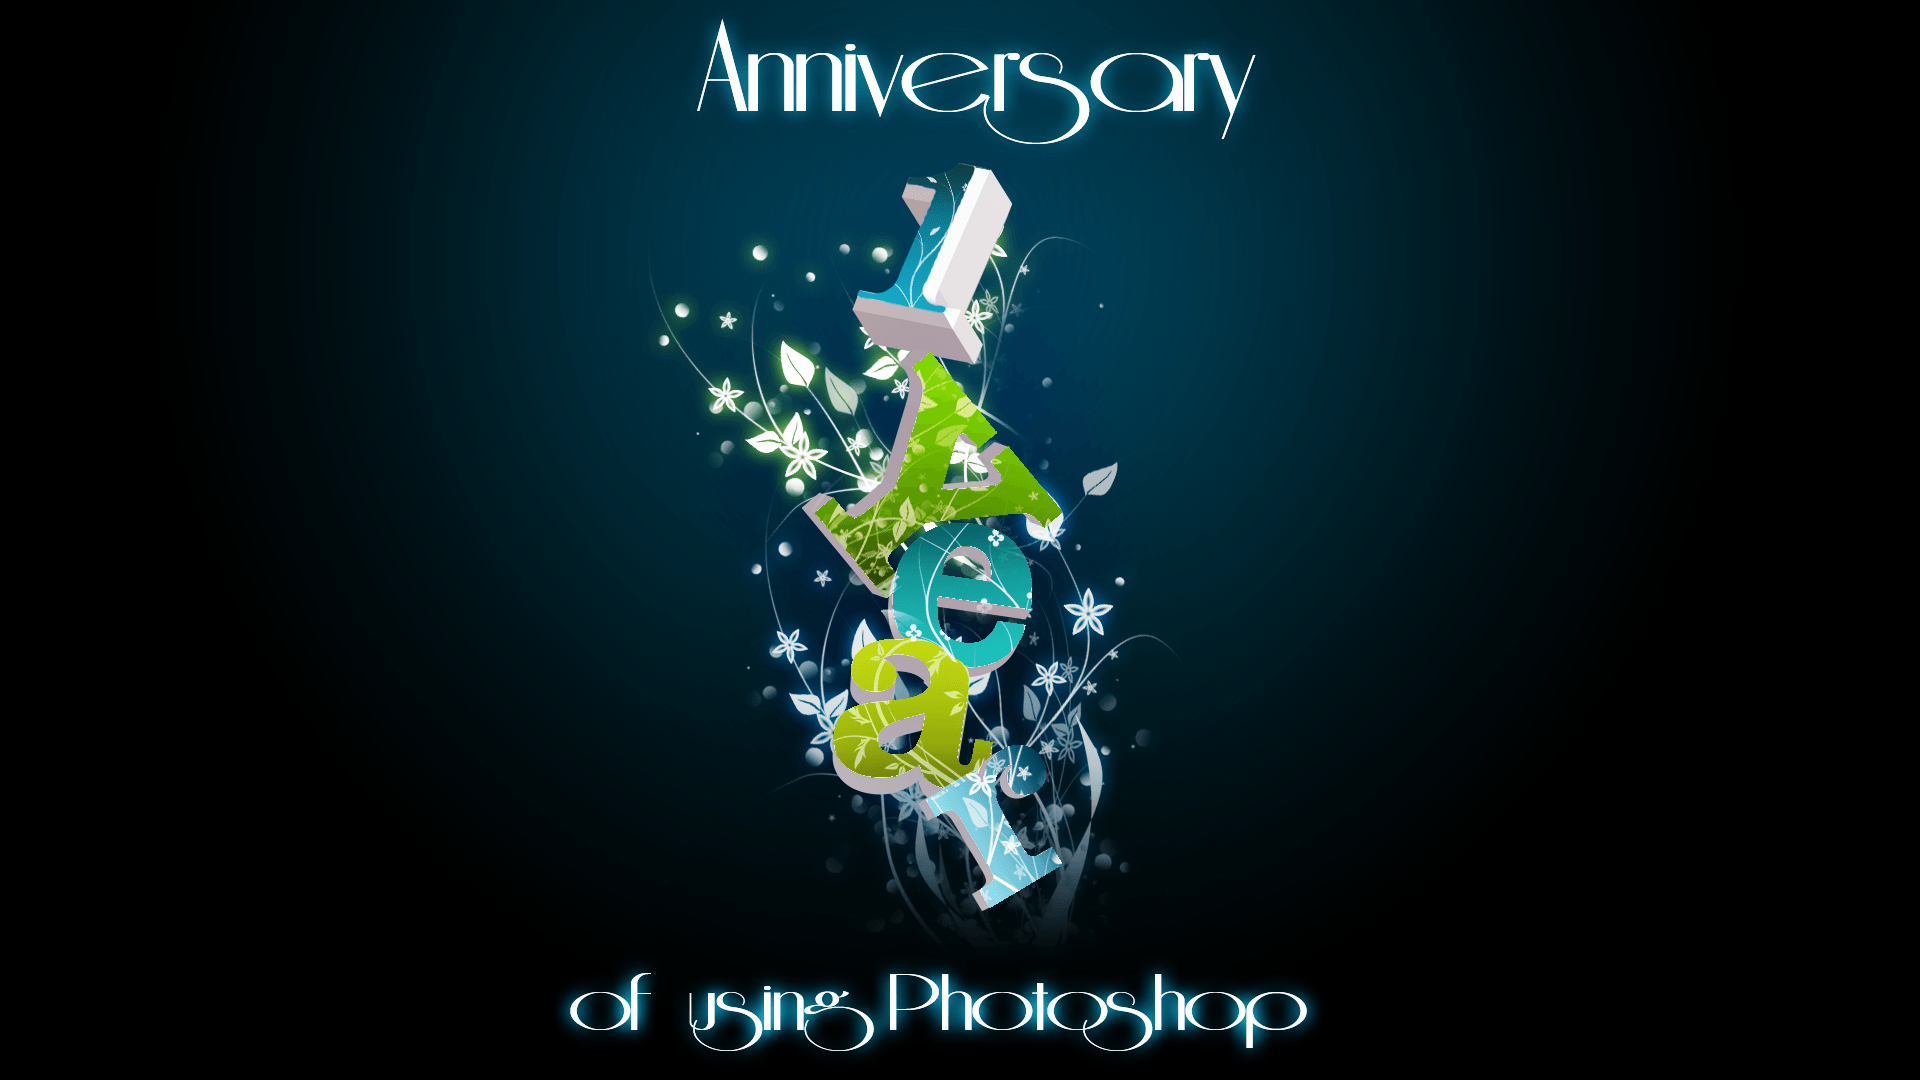 anniversary wallpapers wallpaper cave